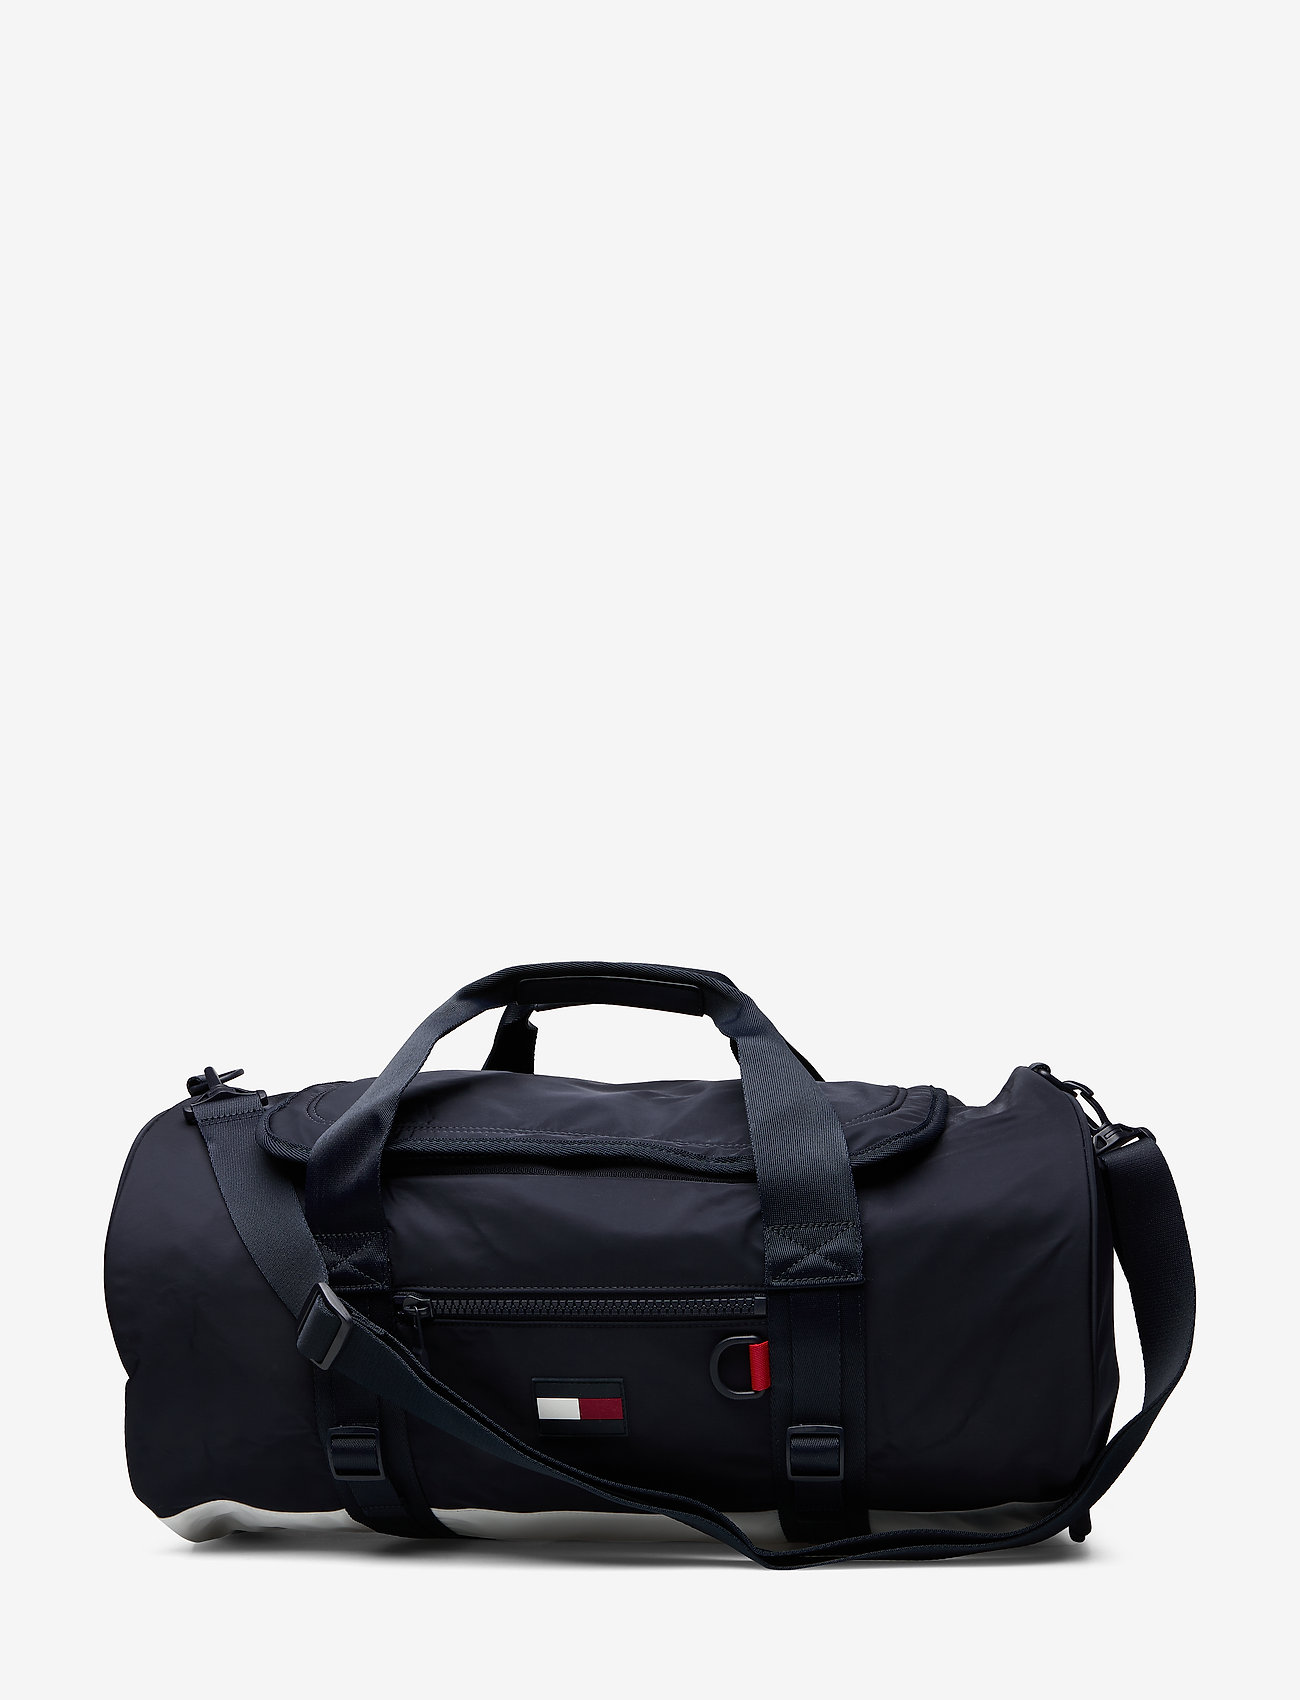 Tommy Hilfiger - TOMMY DUFFLE - viikonloppulaukut - sky captain